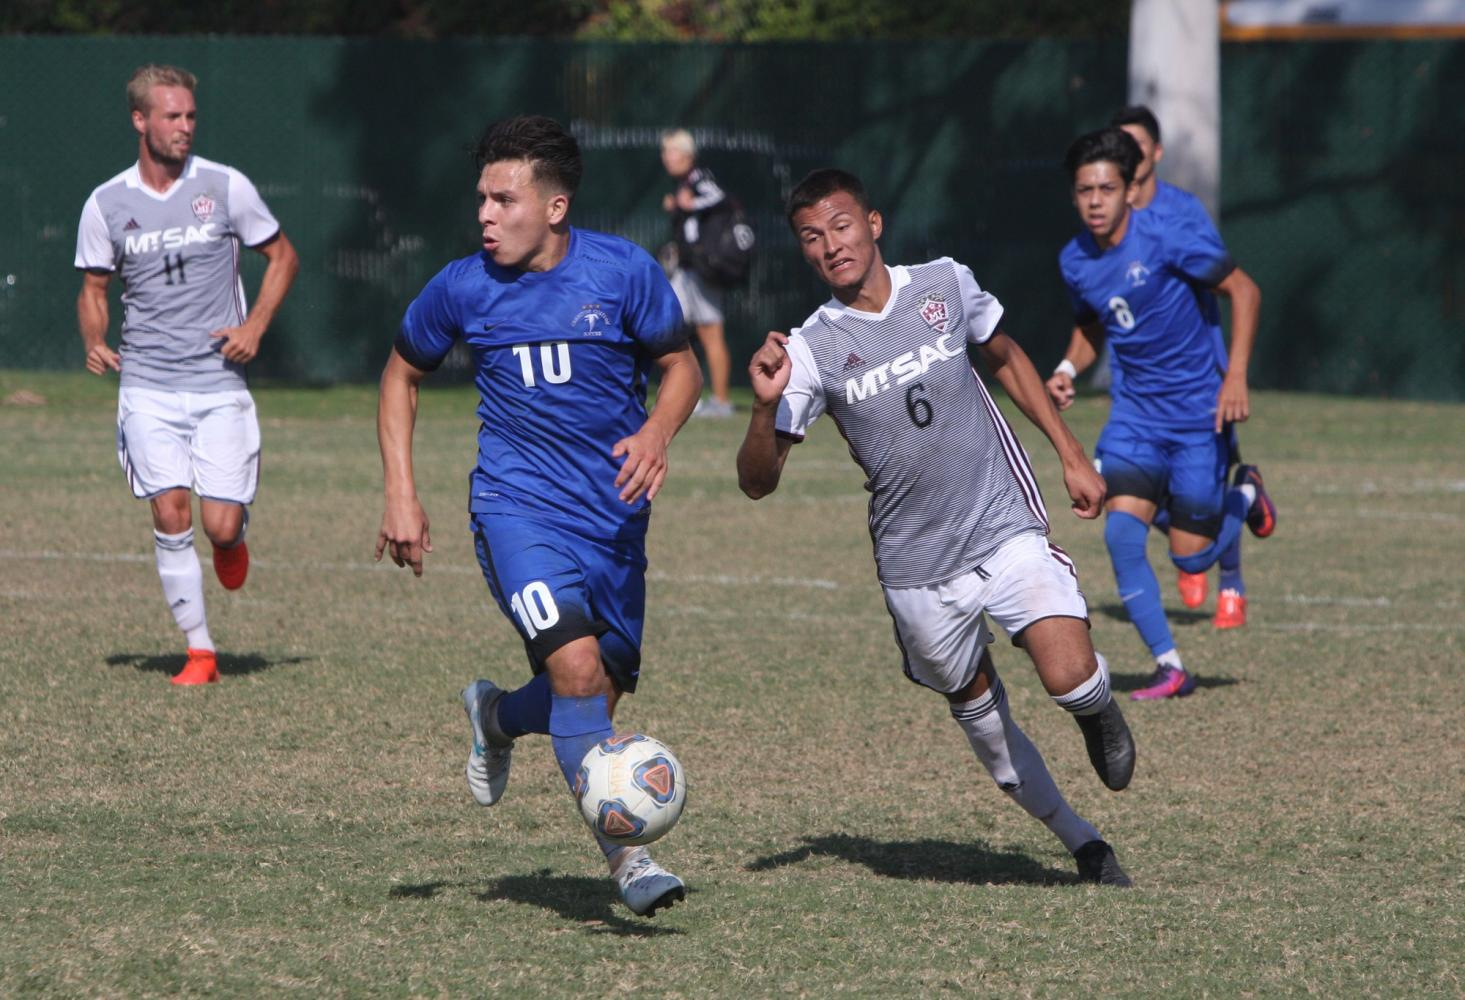 The wins keep on coming for Men's Soccer